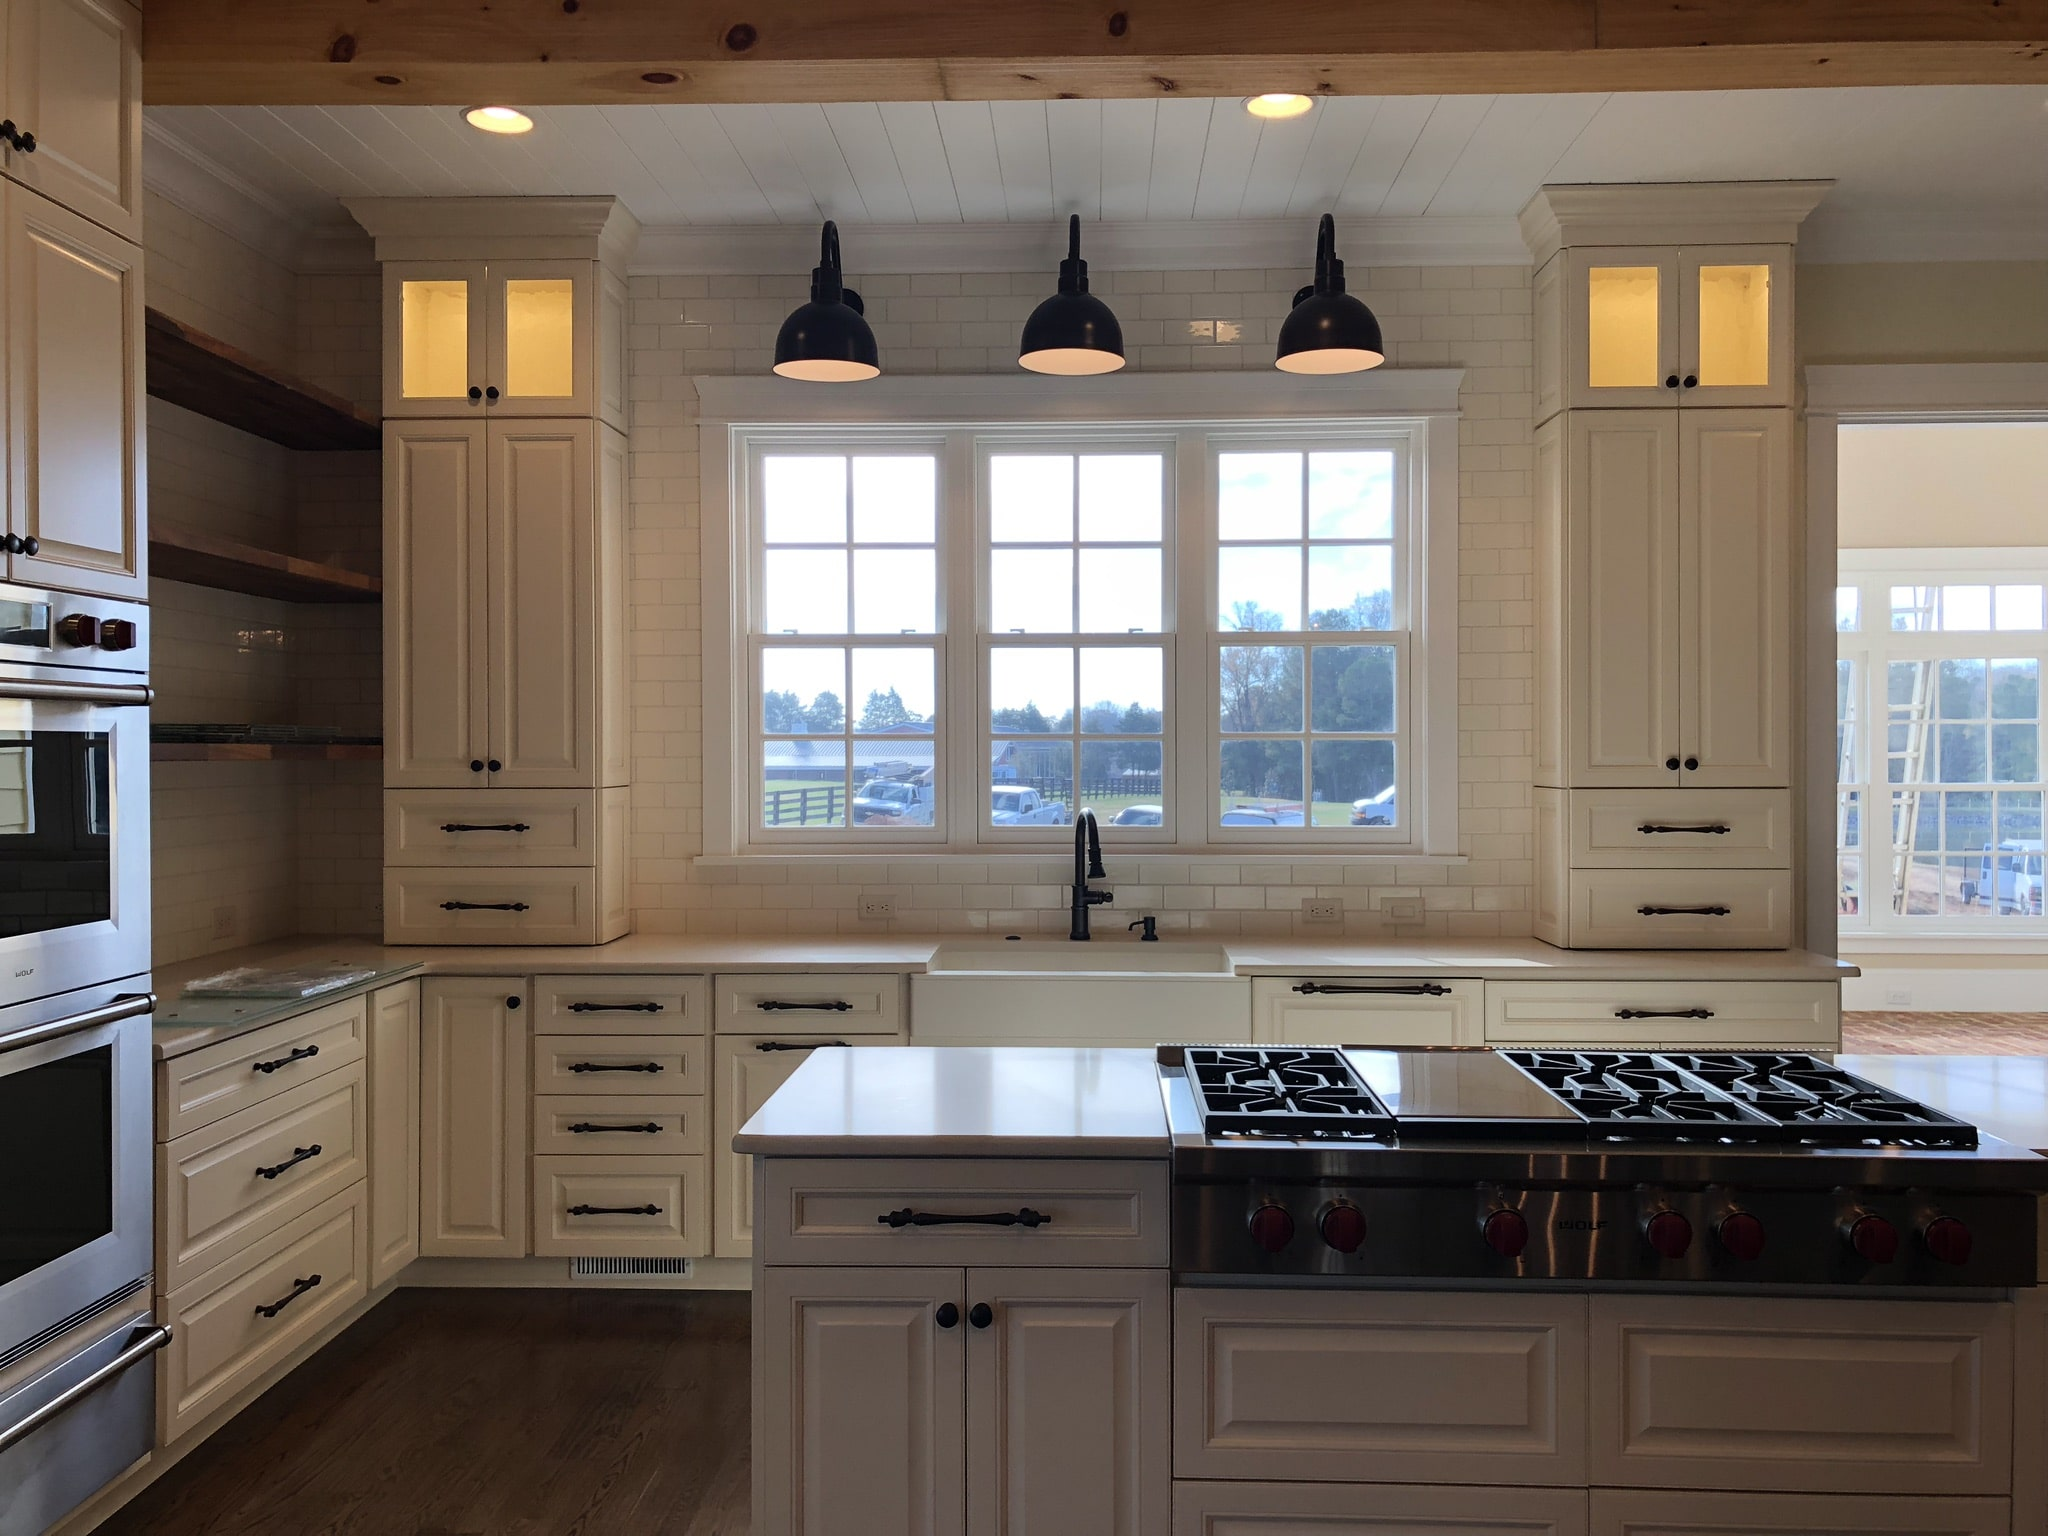 Custom kitchen with quartz counter tops, floating wood shelves and farm sink.